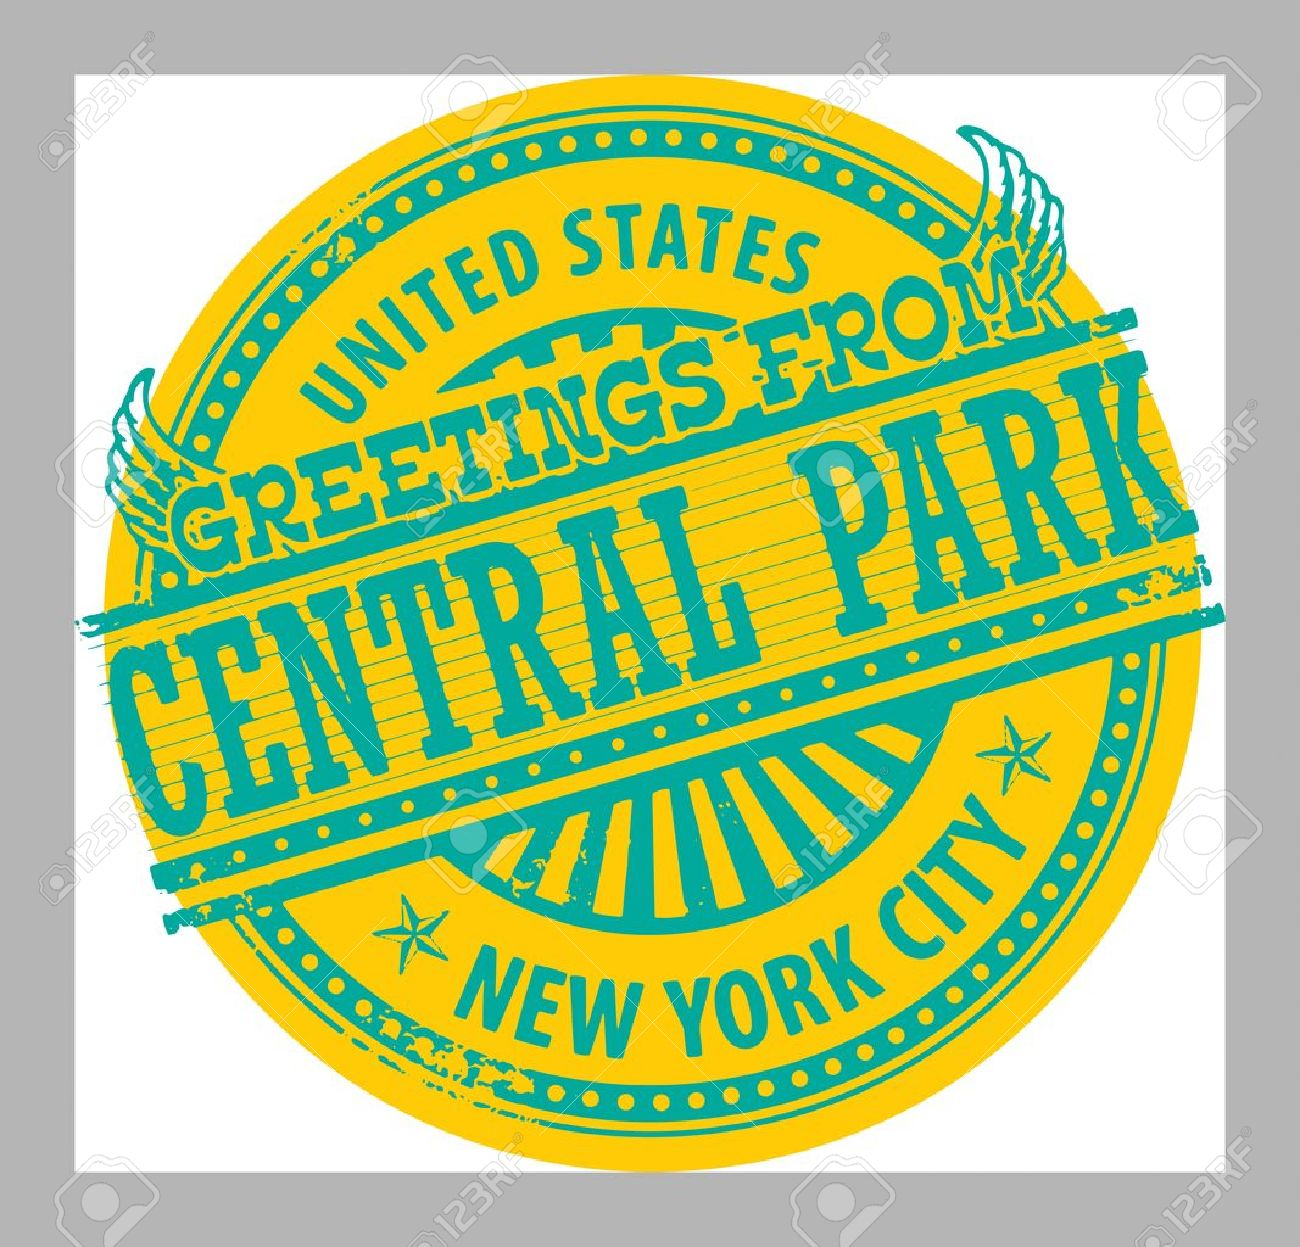 369 Central Park Stock Illustrations, Cliparts And Royalty Free.